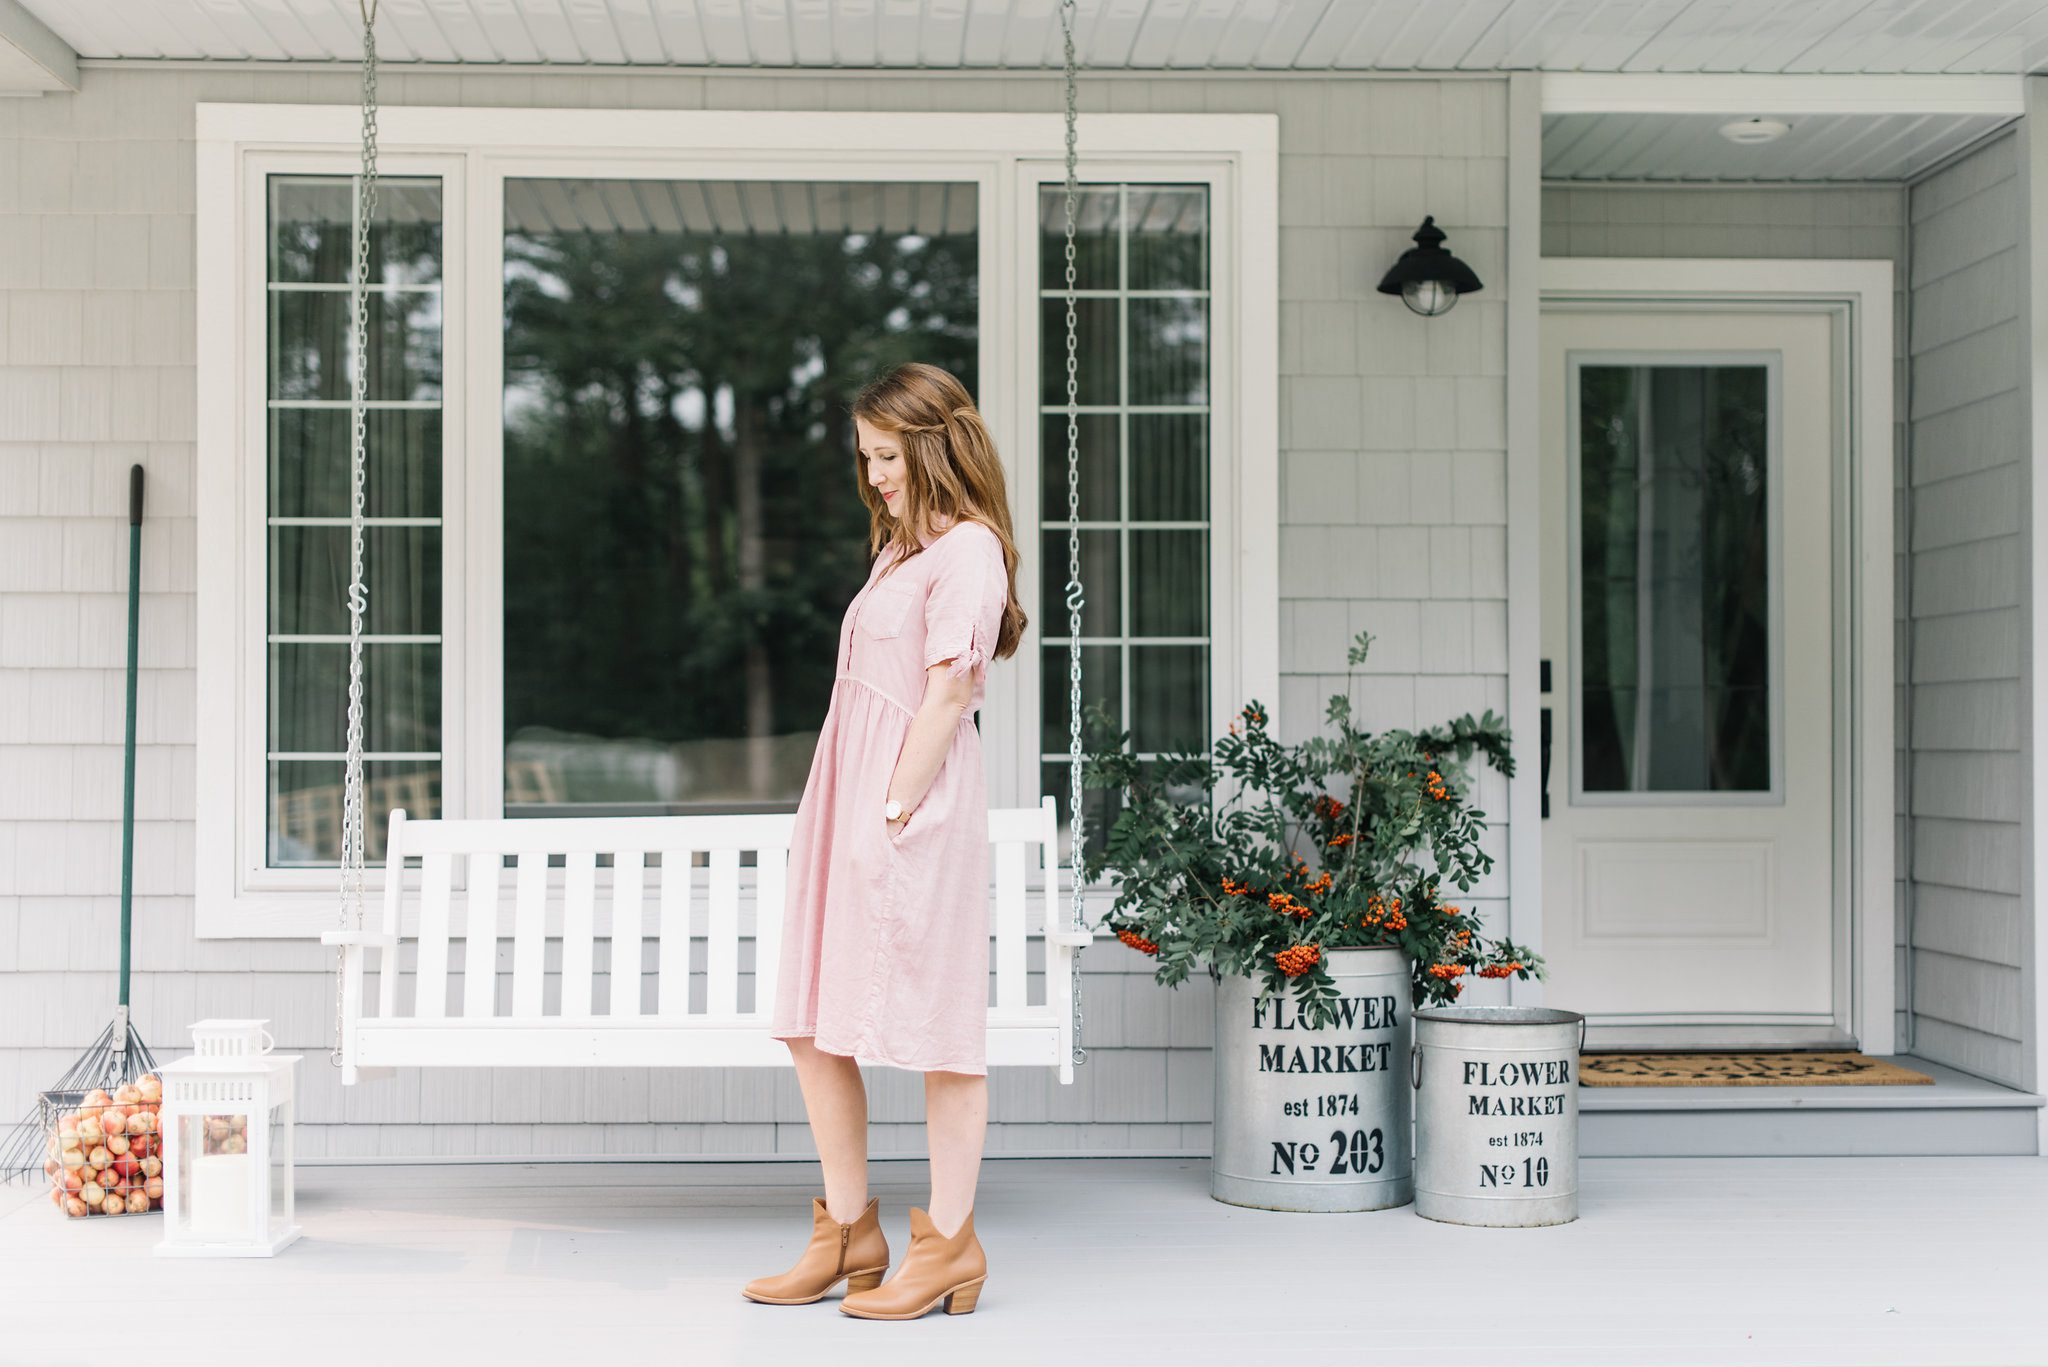 woman standing on front porch in a pink dress